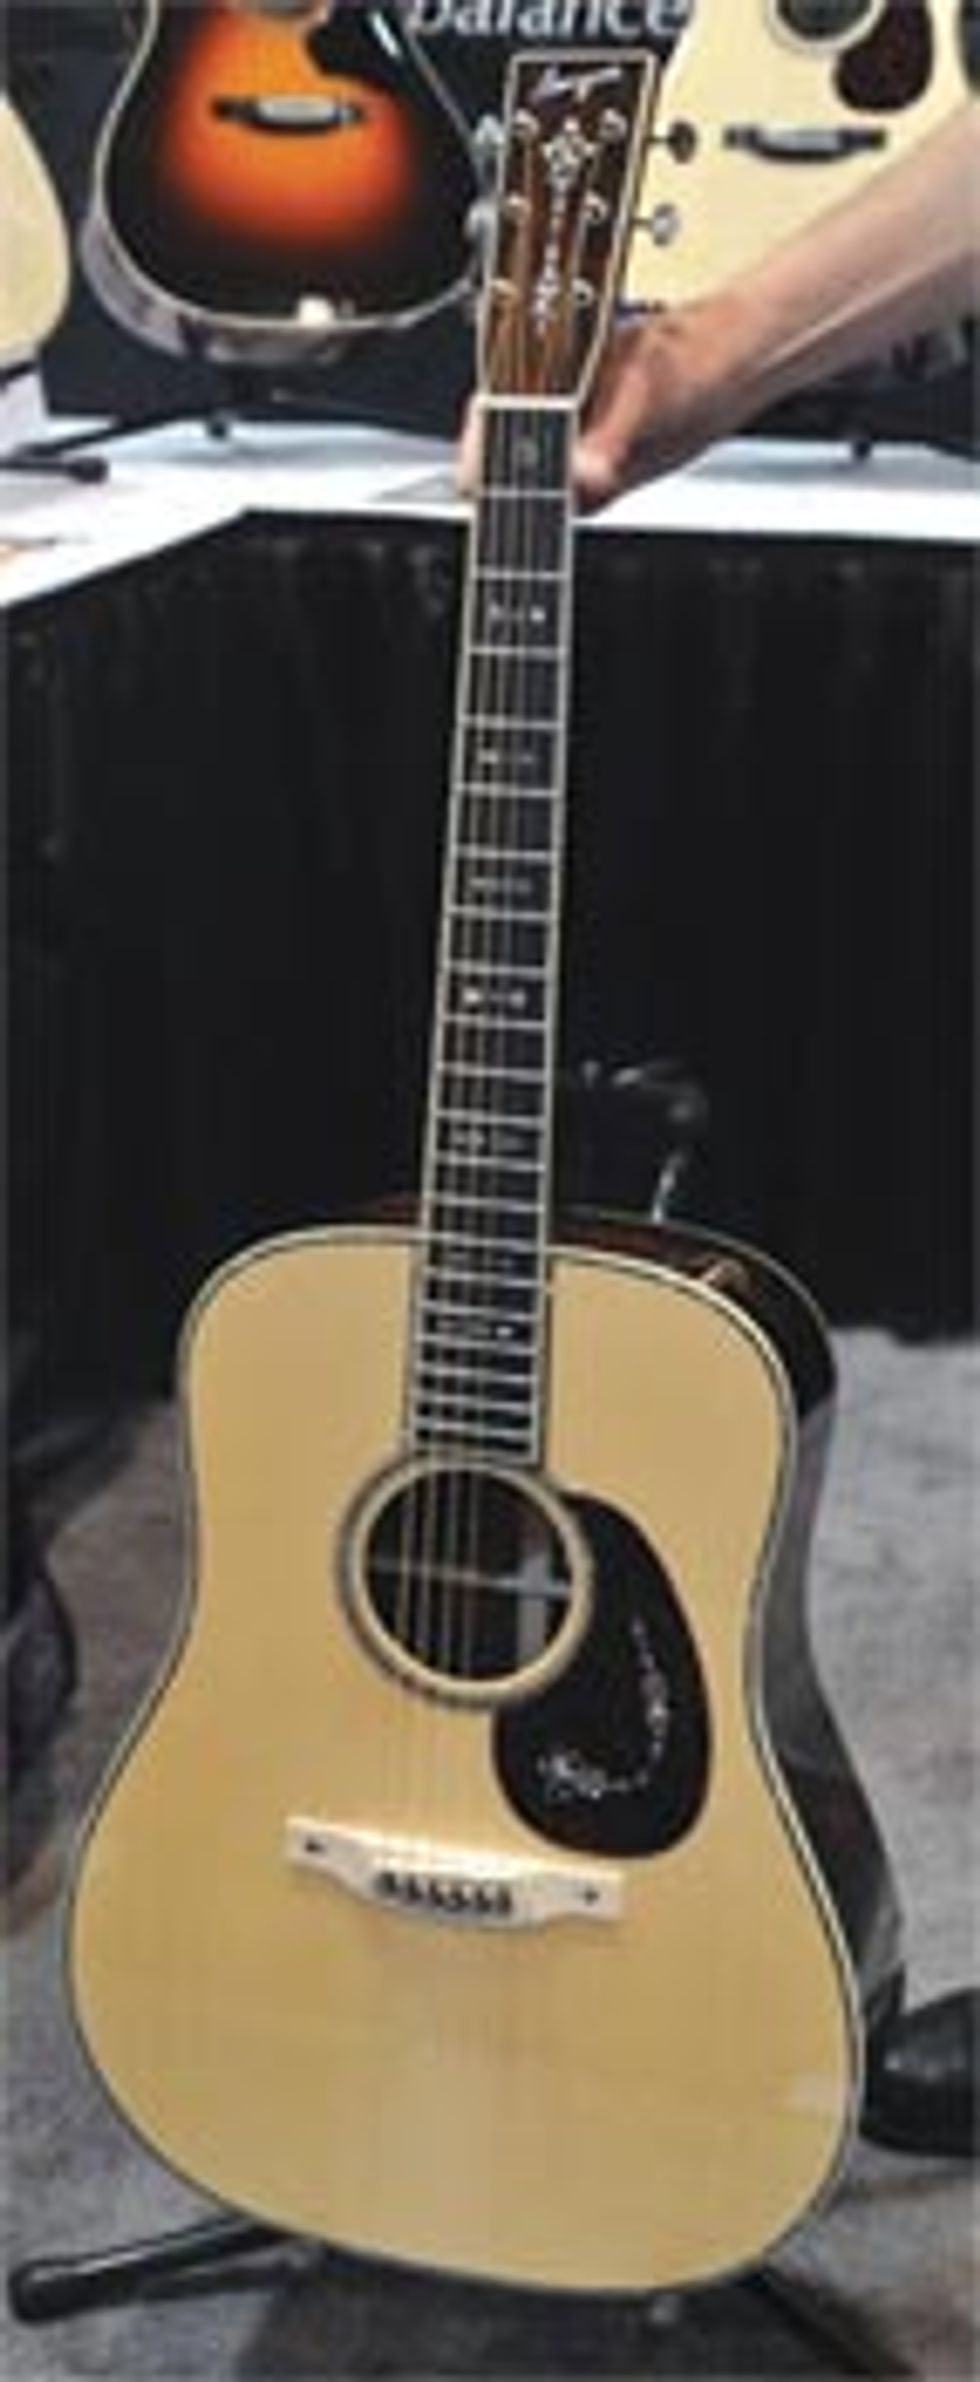 Bourgeois Guitars Ricky Skaggs Limited Edition Dreadnought